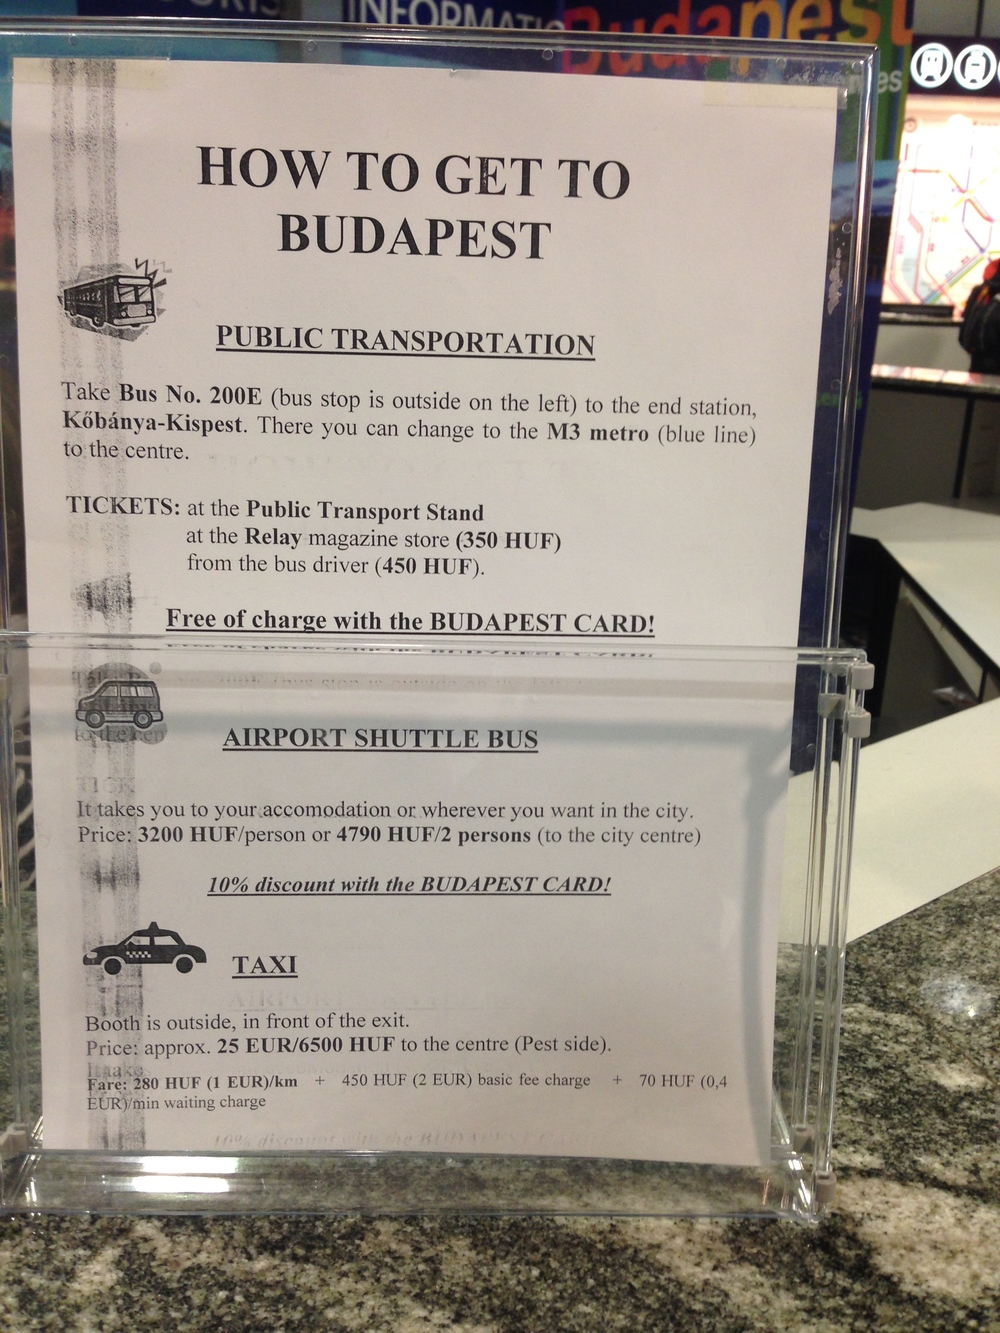 I arrived in Budapest with no plans and no idea what I was doing.. this sheet at the airport wasn't that helpful.